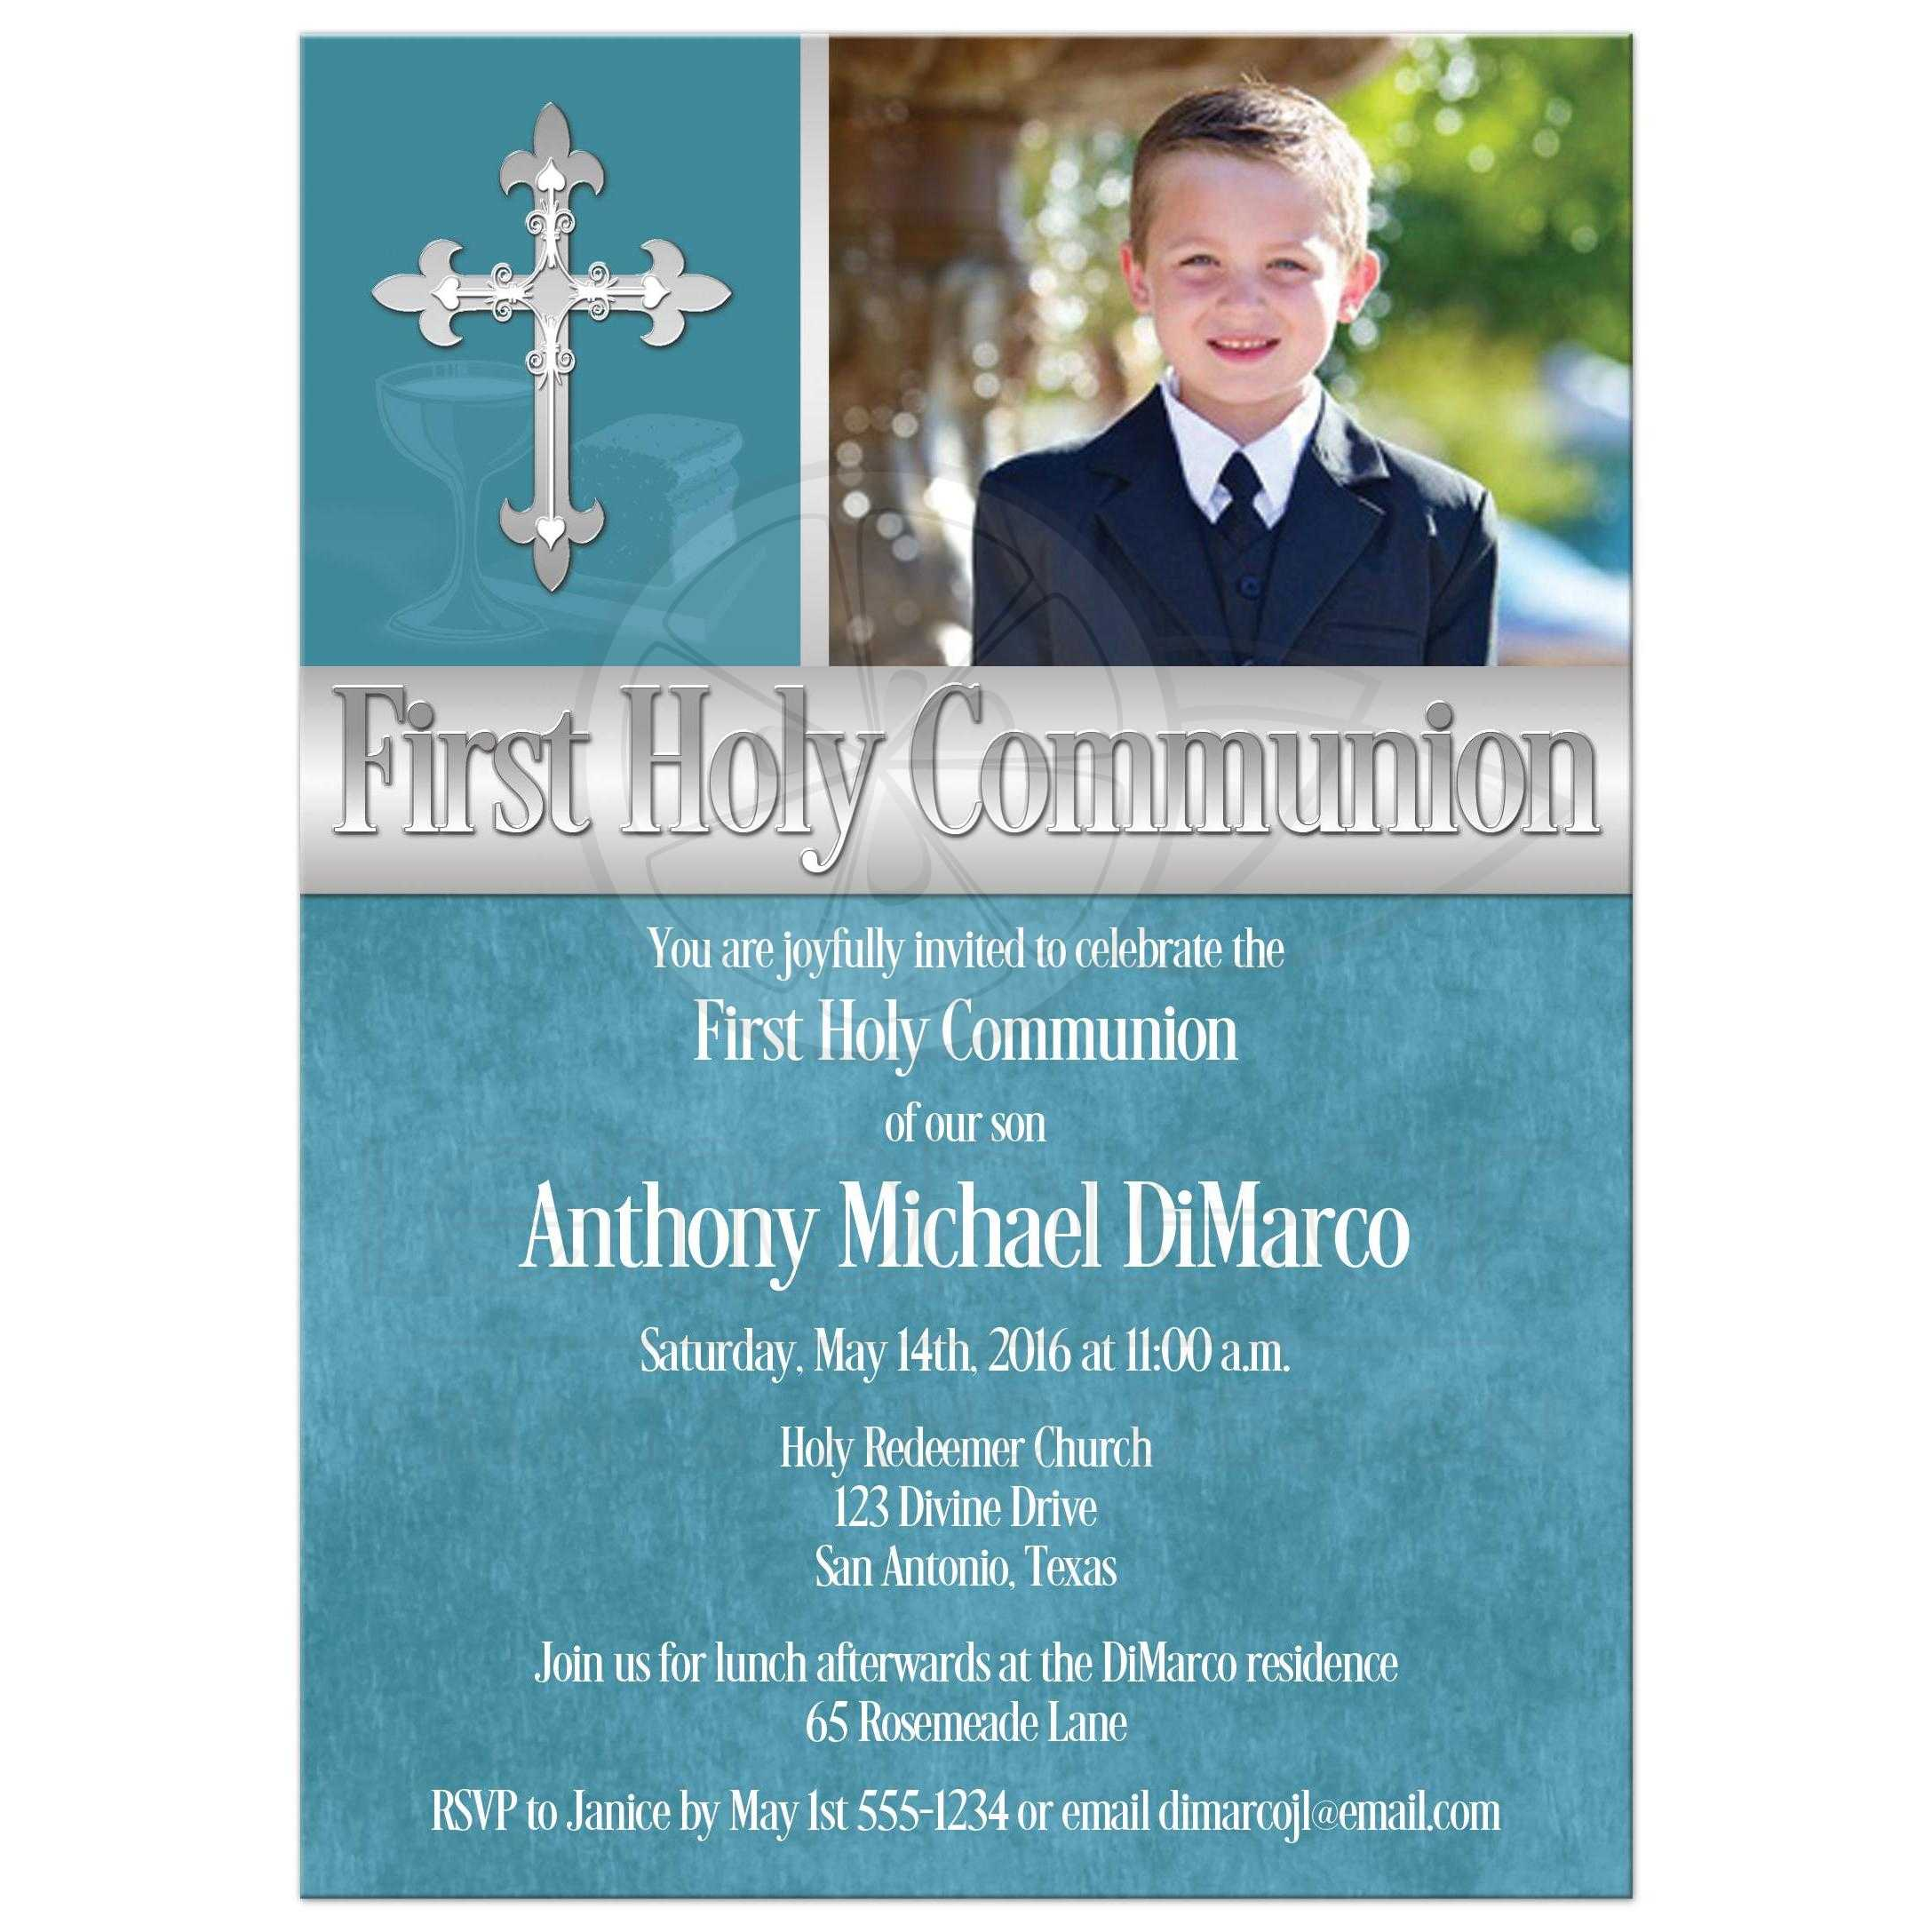 first holy communion invitation photo template teal blue